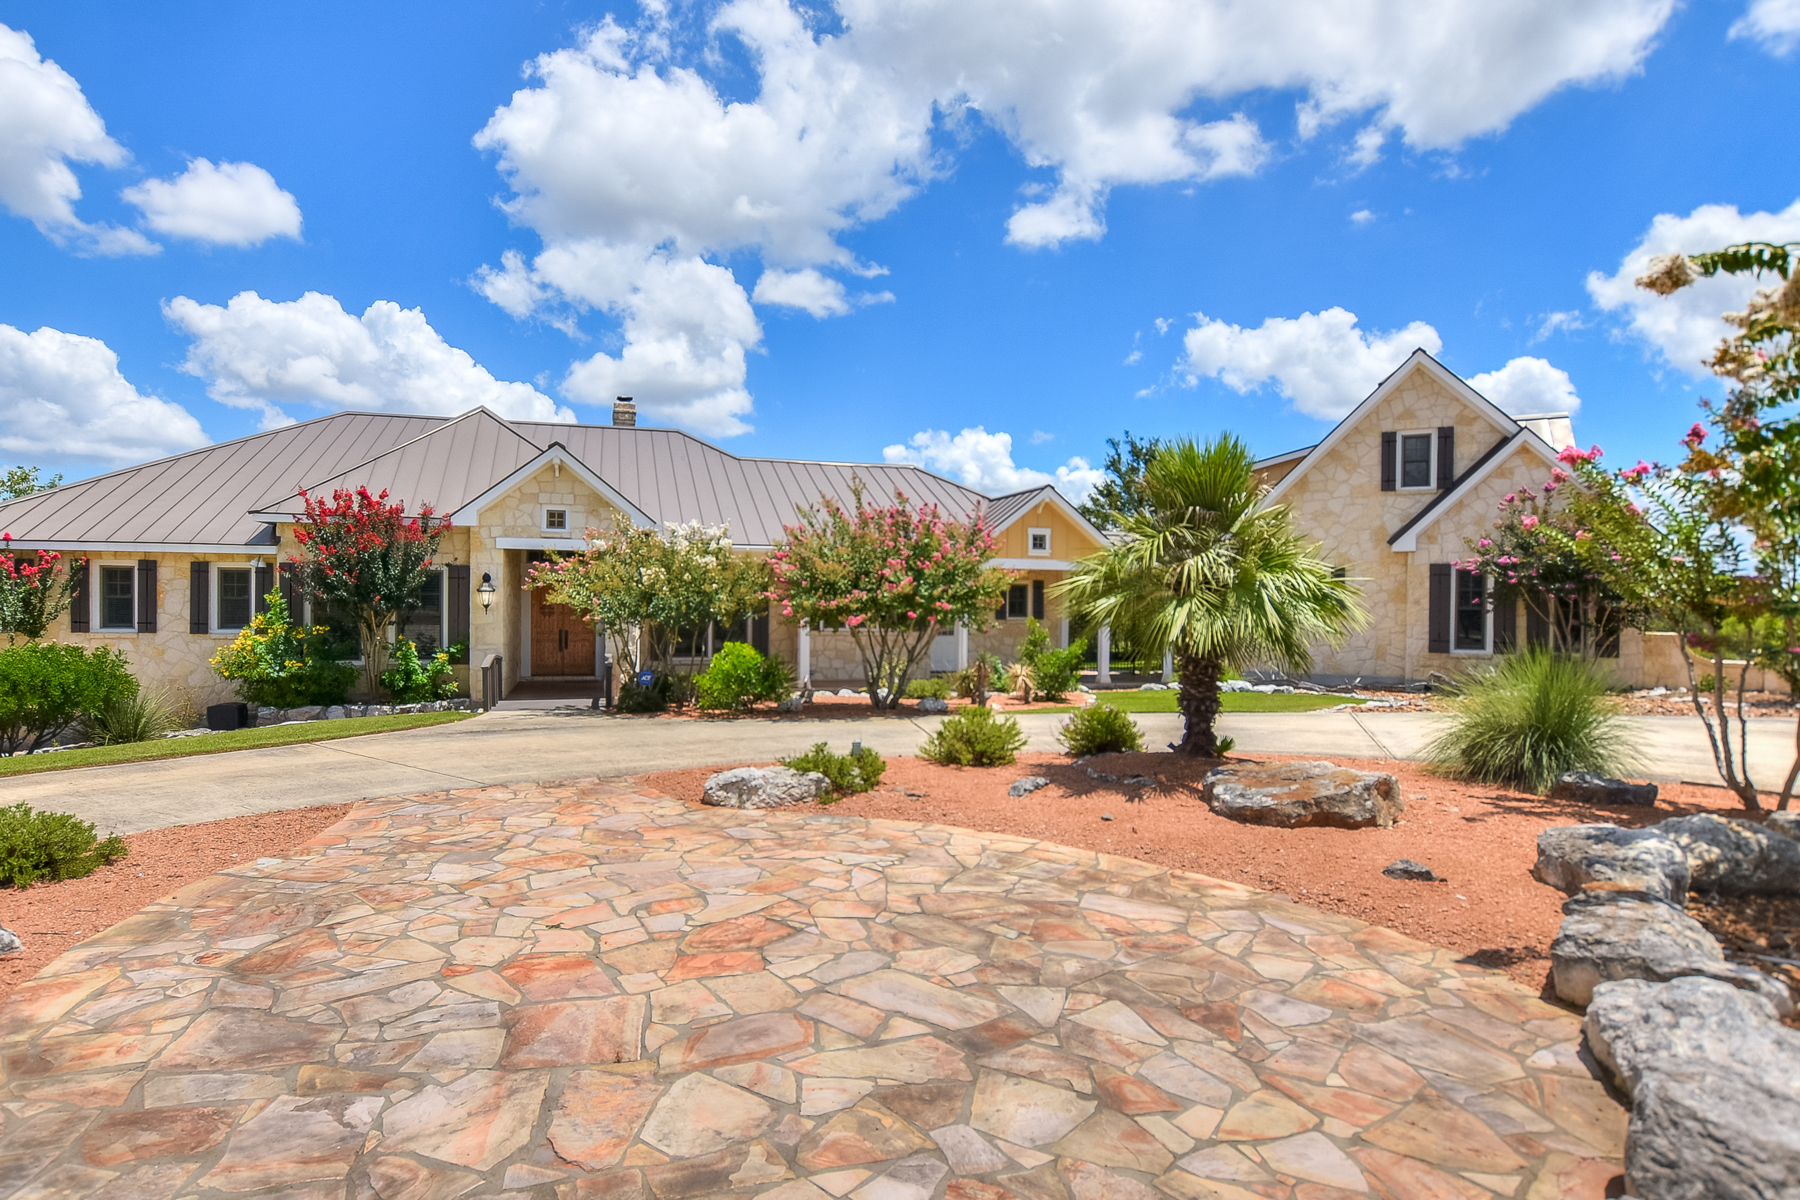 Single Family Home for Sale at Gorgeous Views in Tapatio Springs 125 Paradise Point Dr Boerne, Texas 78006 United States